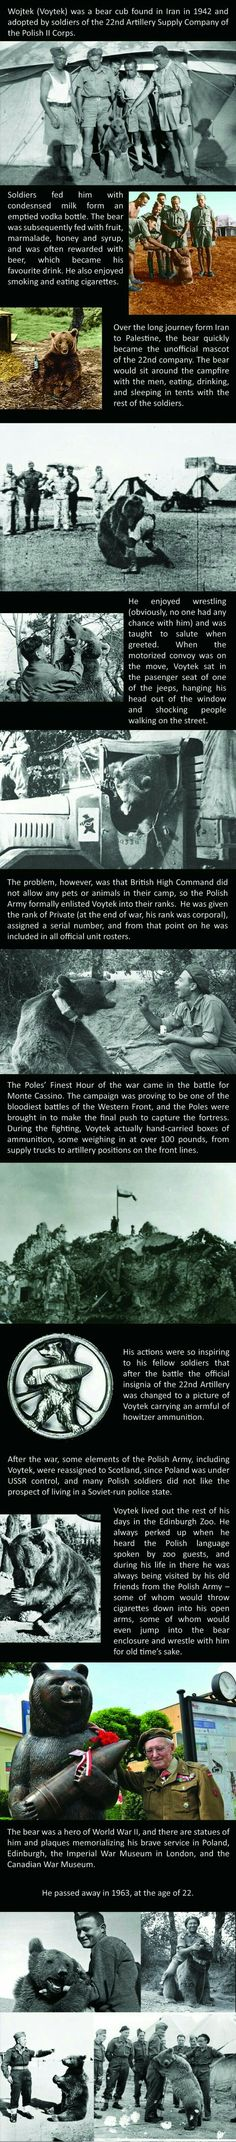 The other incredible Allied bear (besides Russia). Amazing.